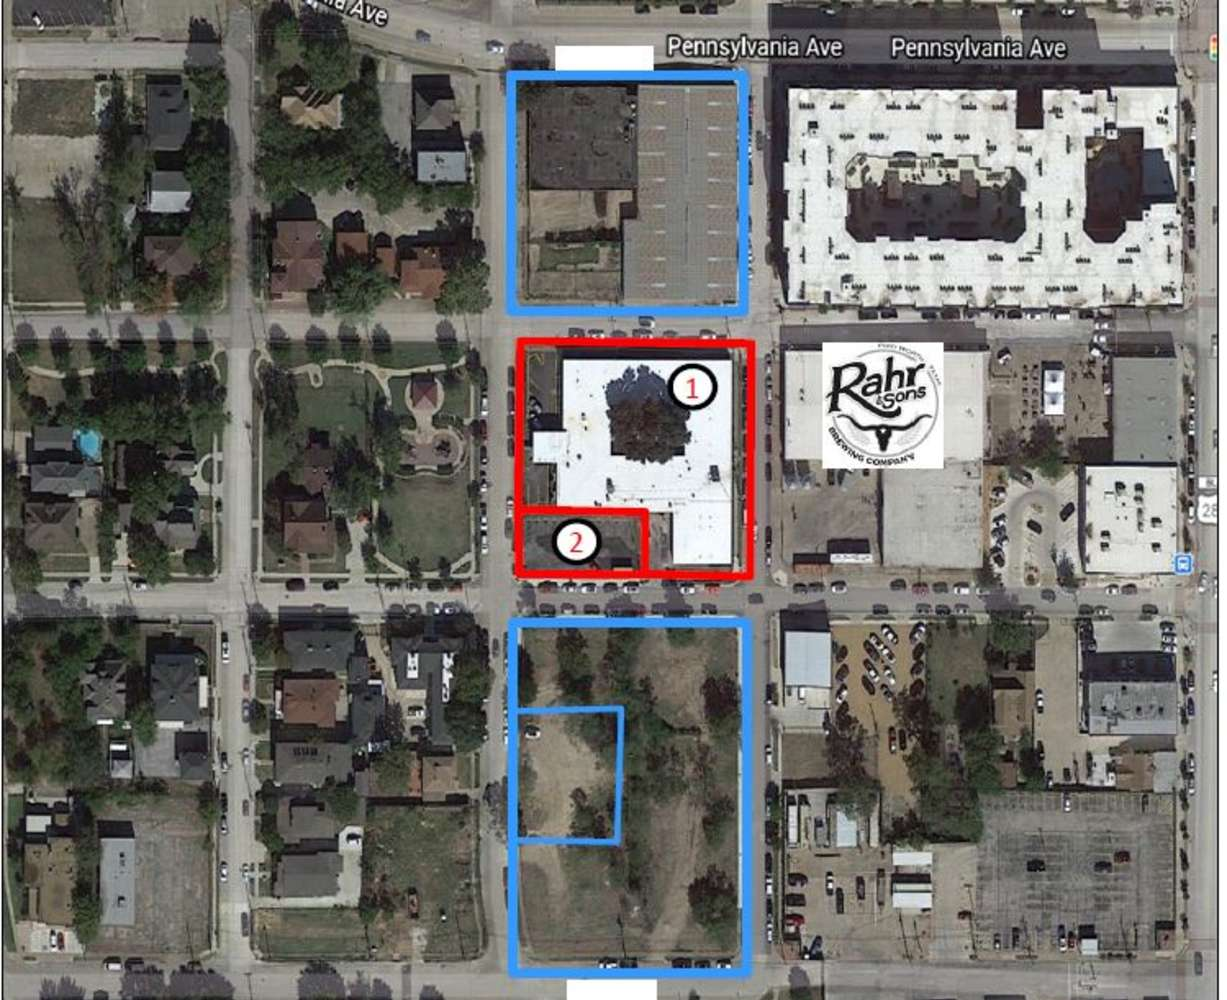 Land Fort worth, 76104 - 701 St Louis Ave